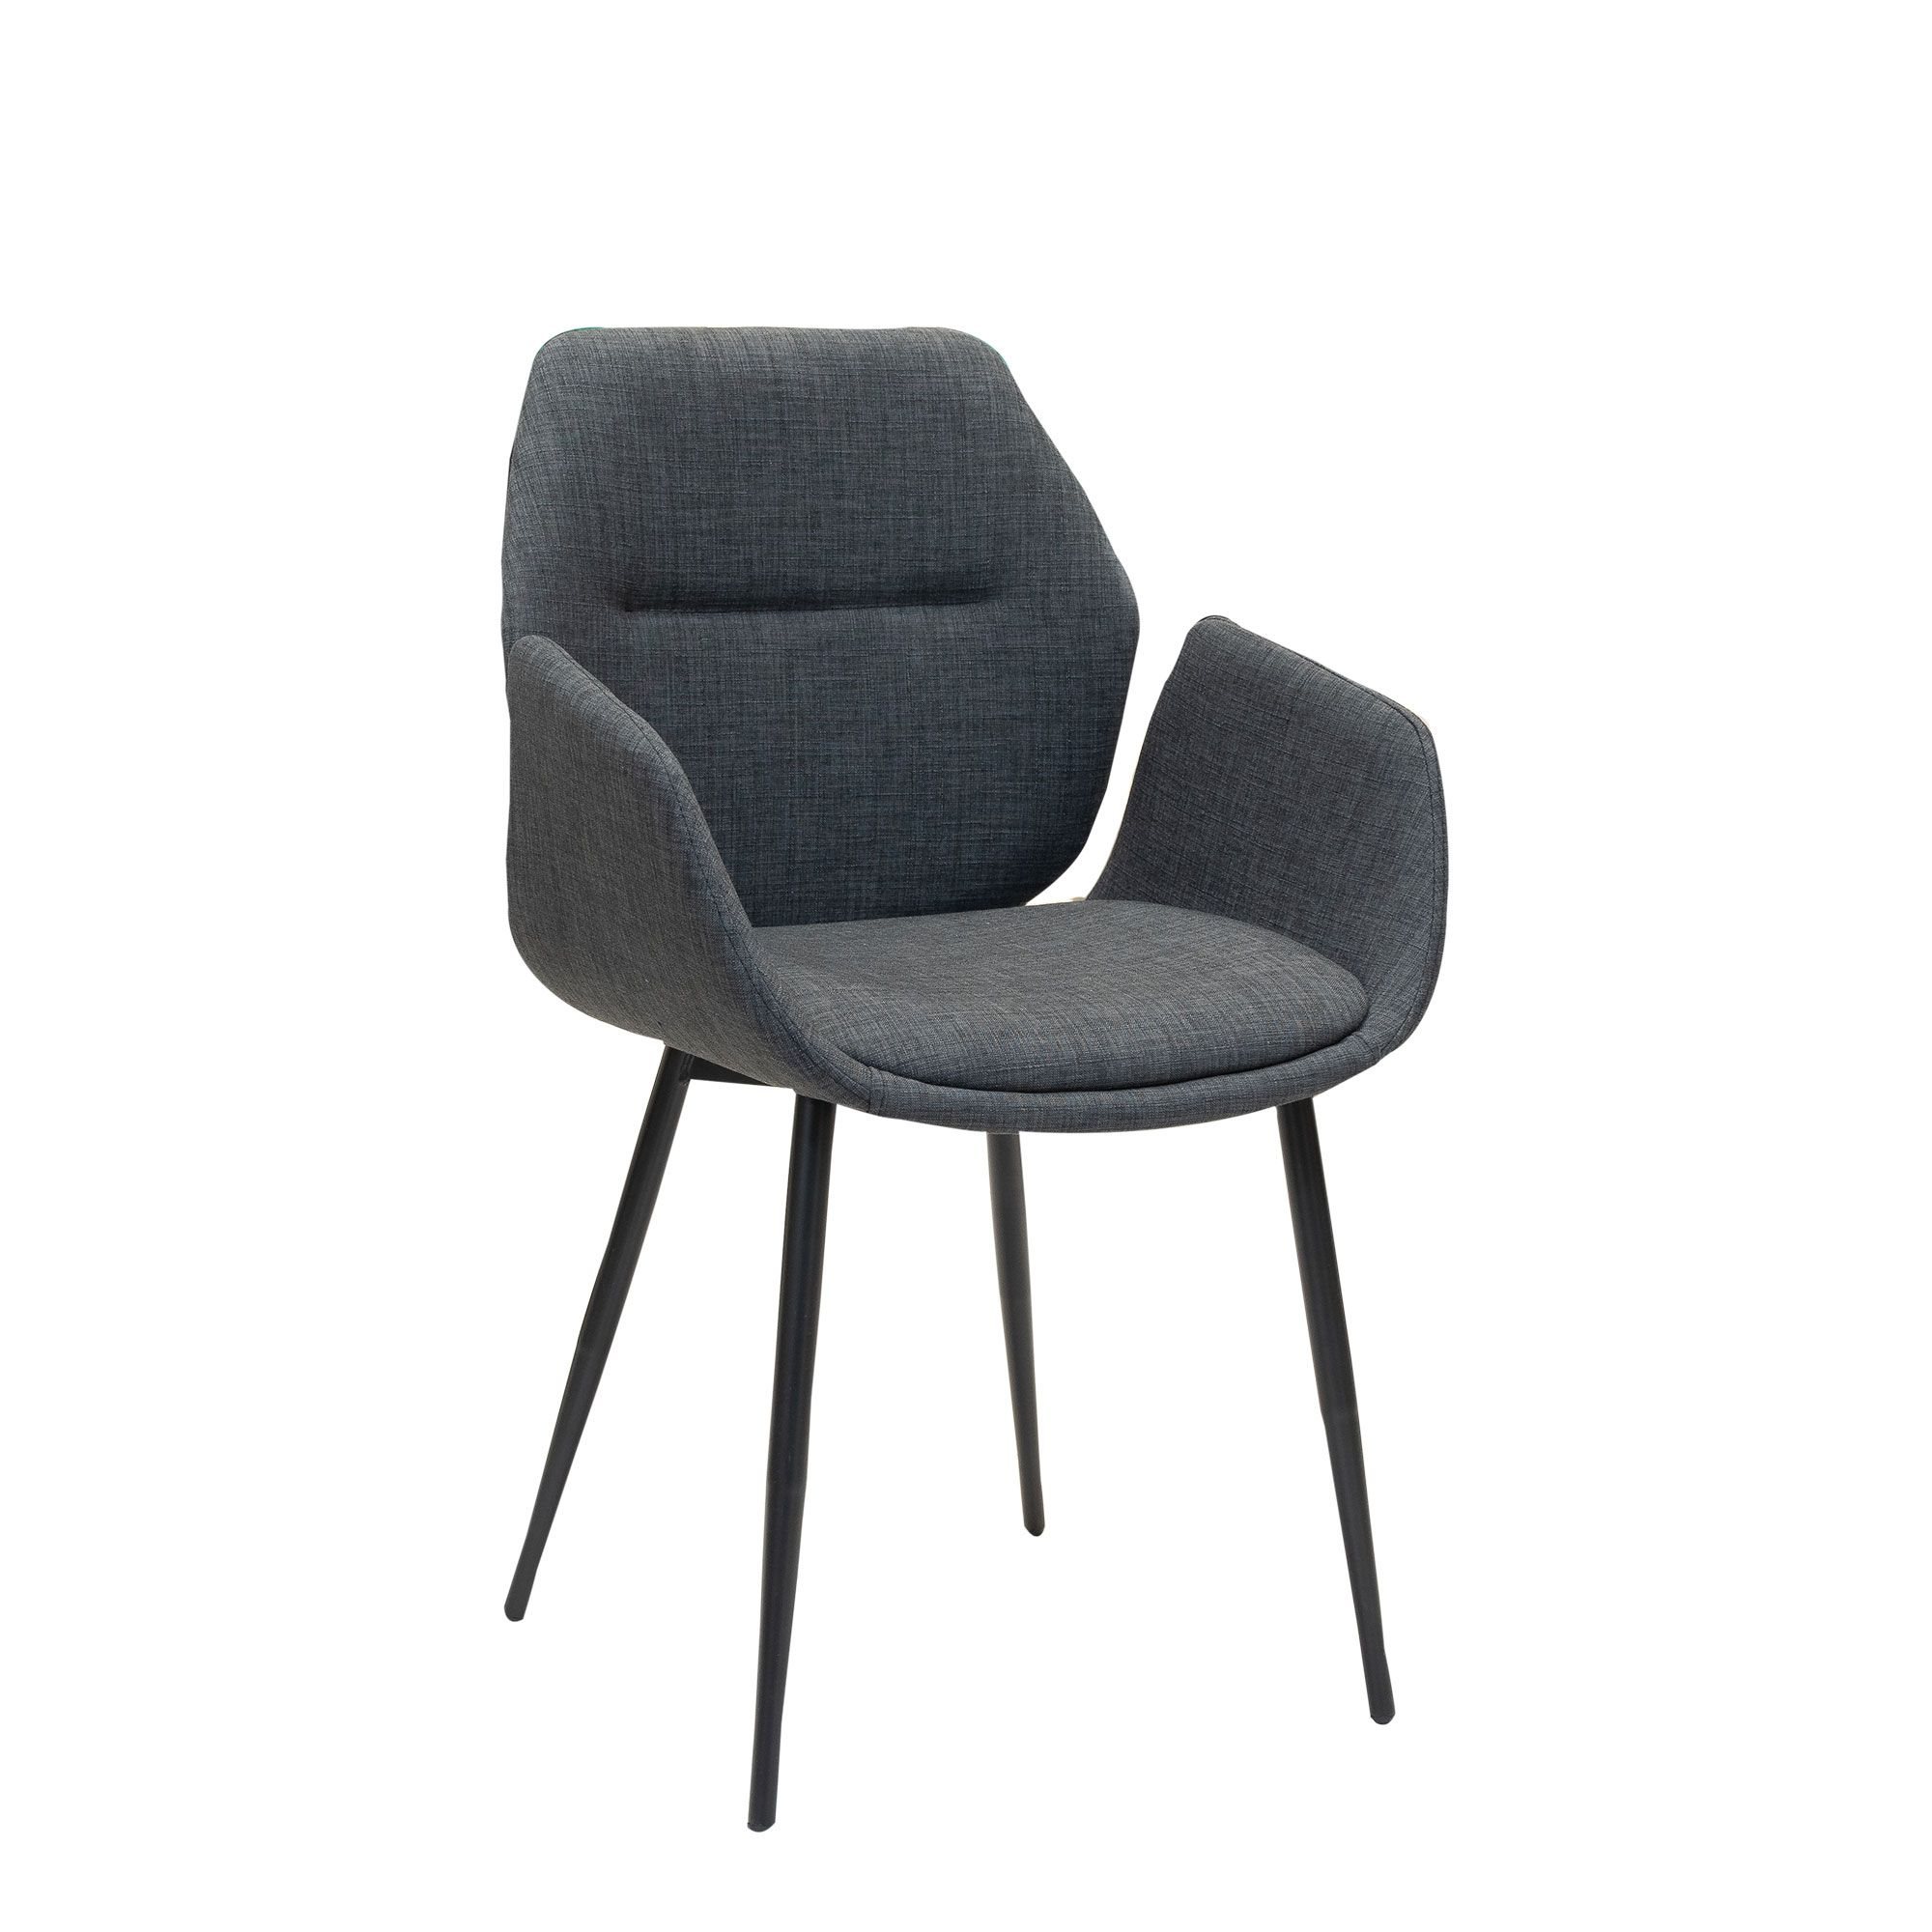 Brilliant Zanidy Accent Chair Grey Accent Chair Greychair Small Gmtry Best Dining Table And Chair Ideas Images Gmtryco